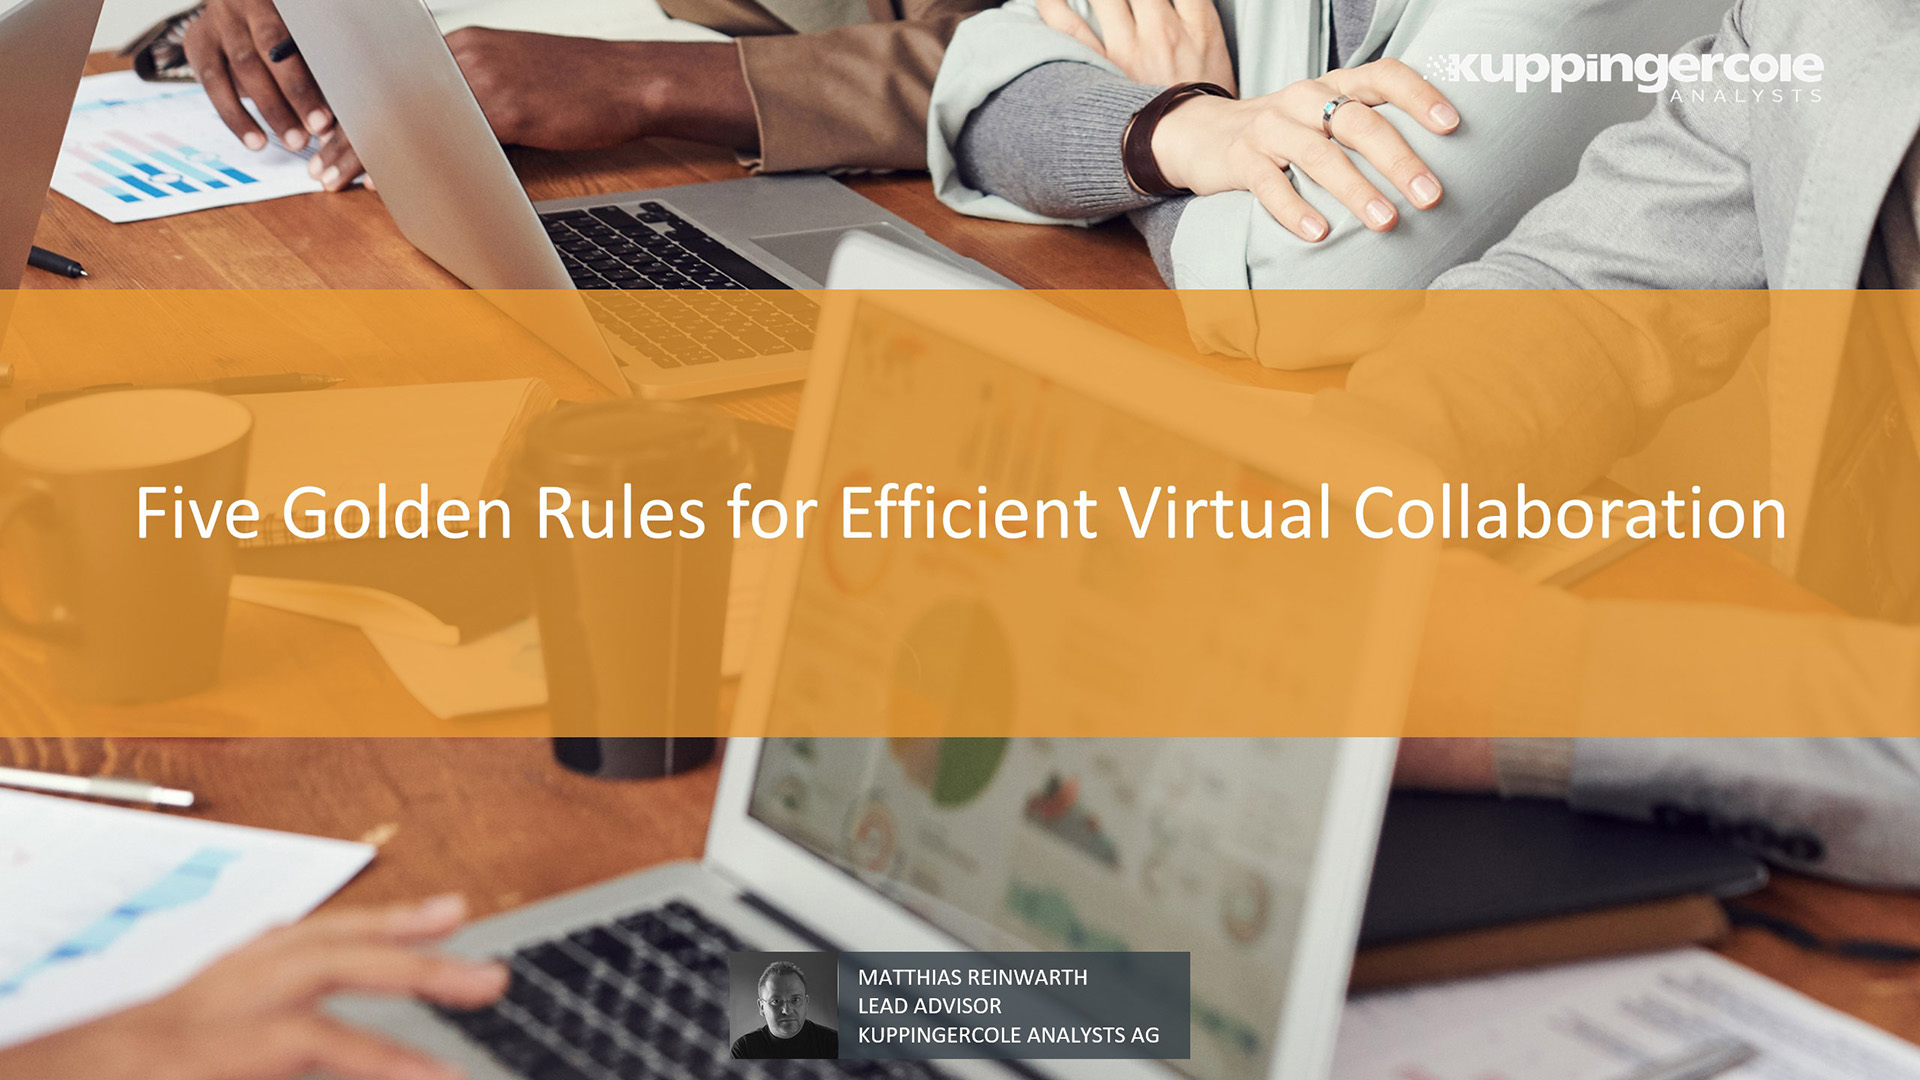 Five Golden Rules for Efficient Virtual Collaboration